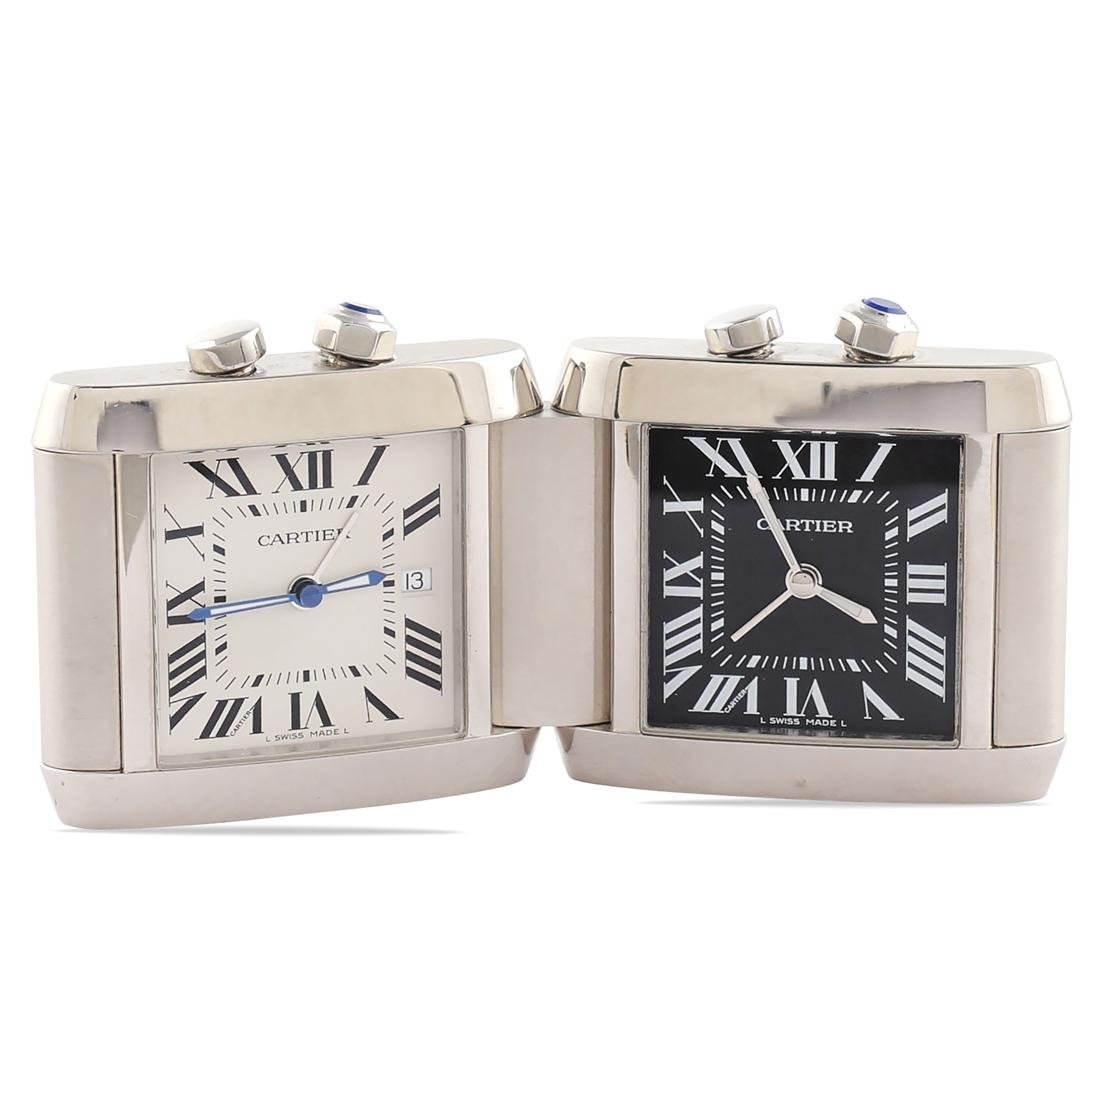 Cartier Tank Duo, travel alarm clock signed and n.